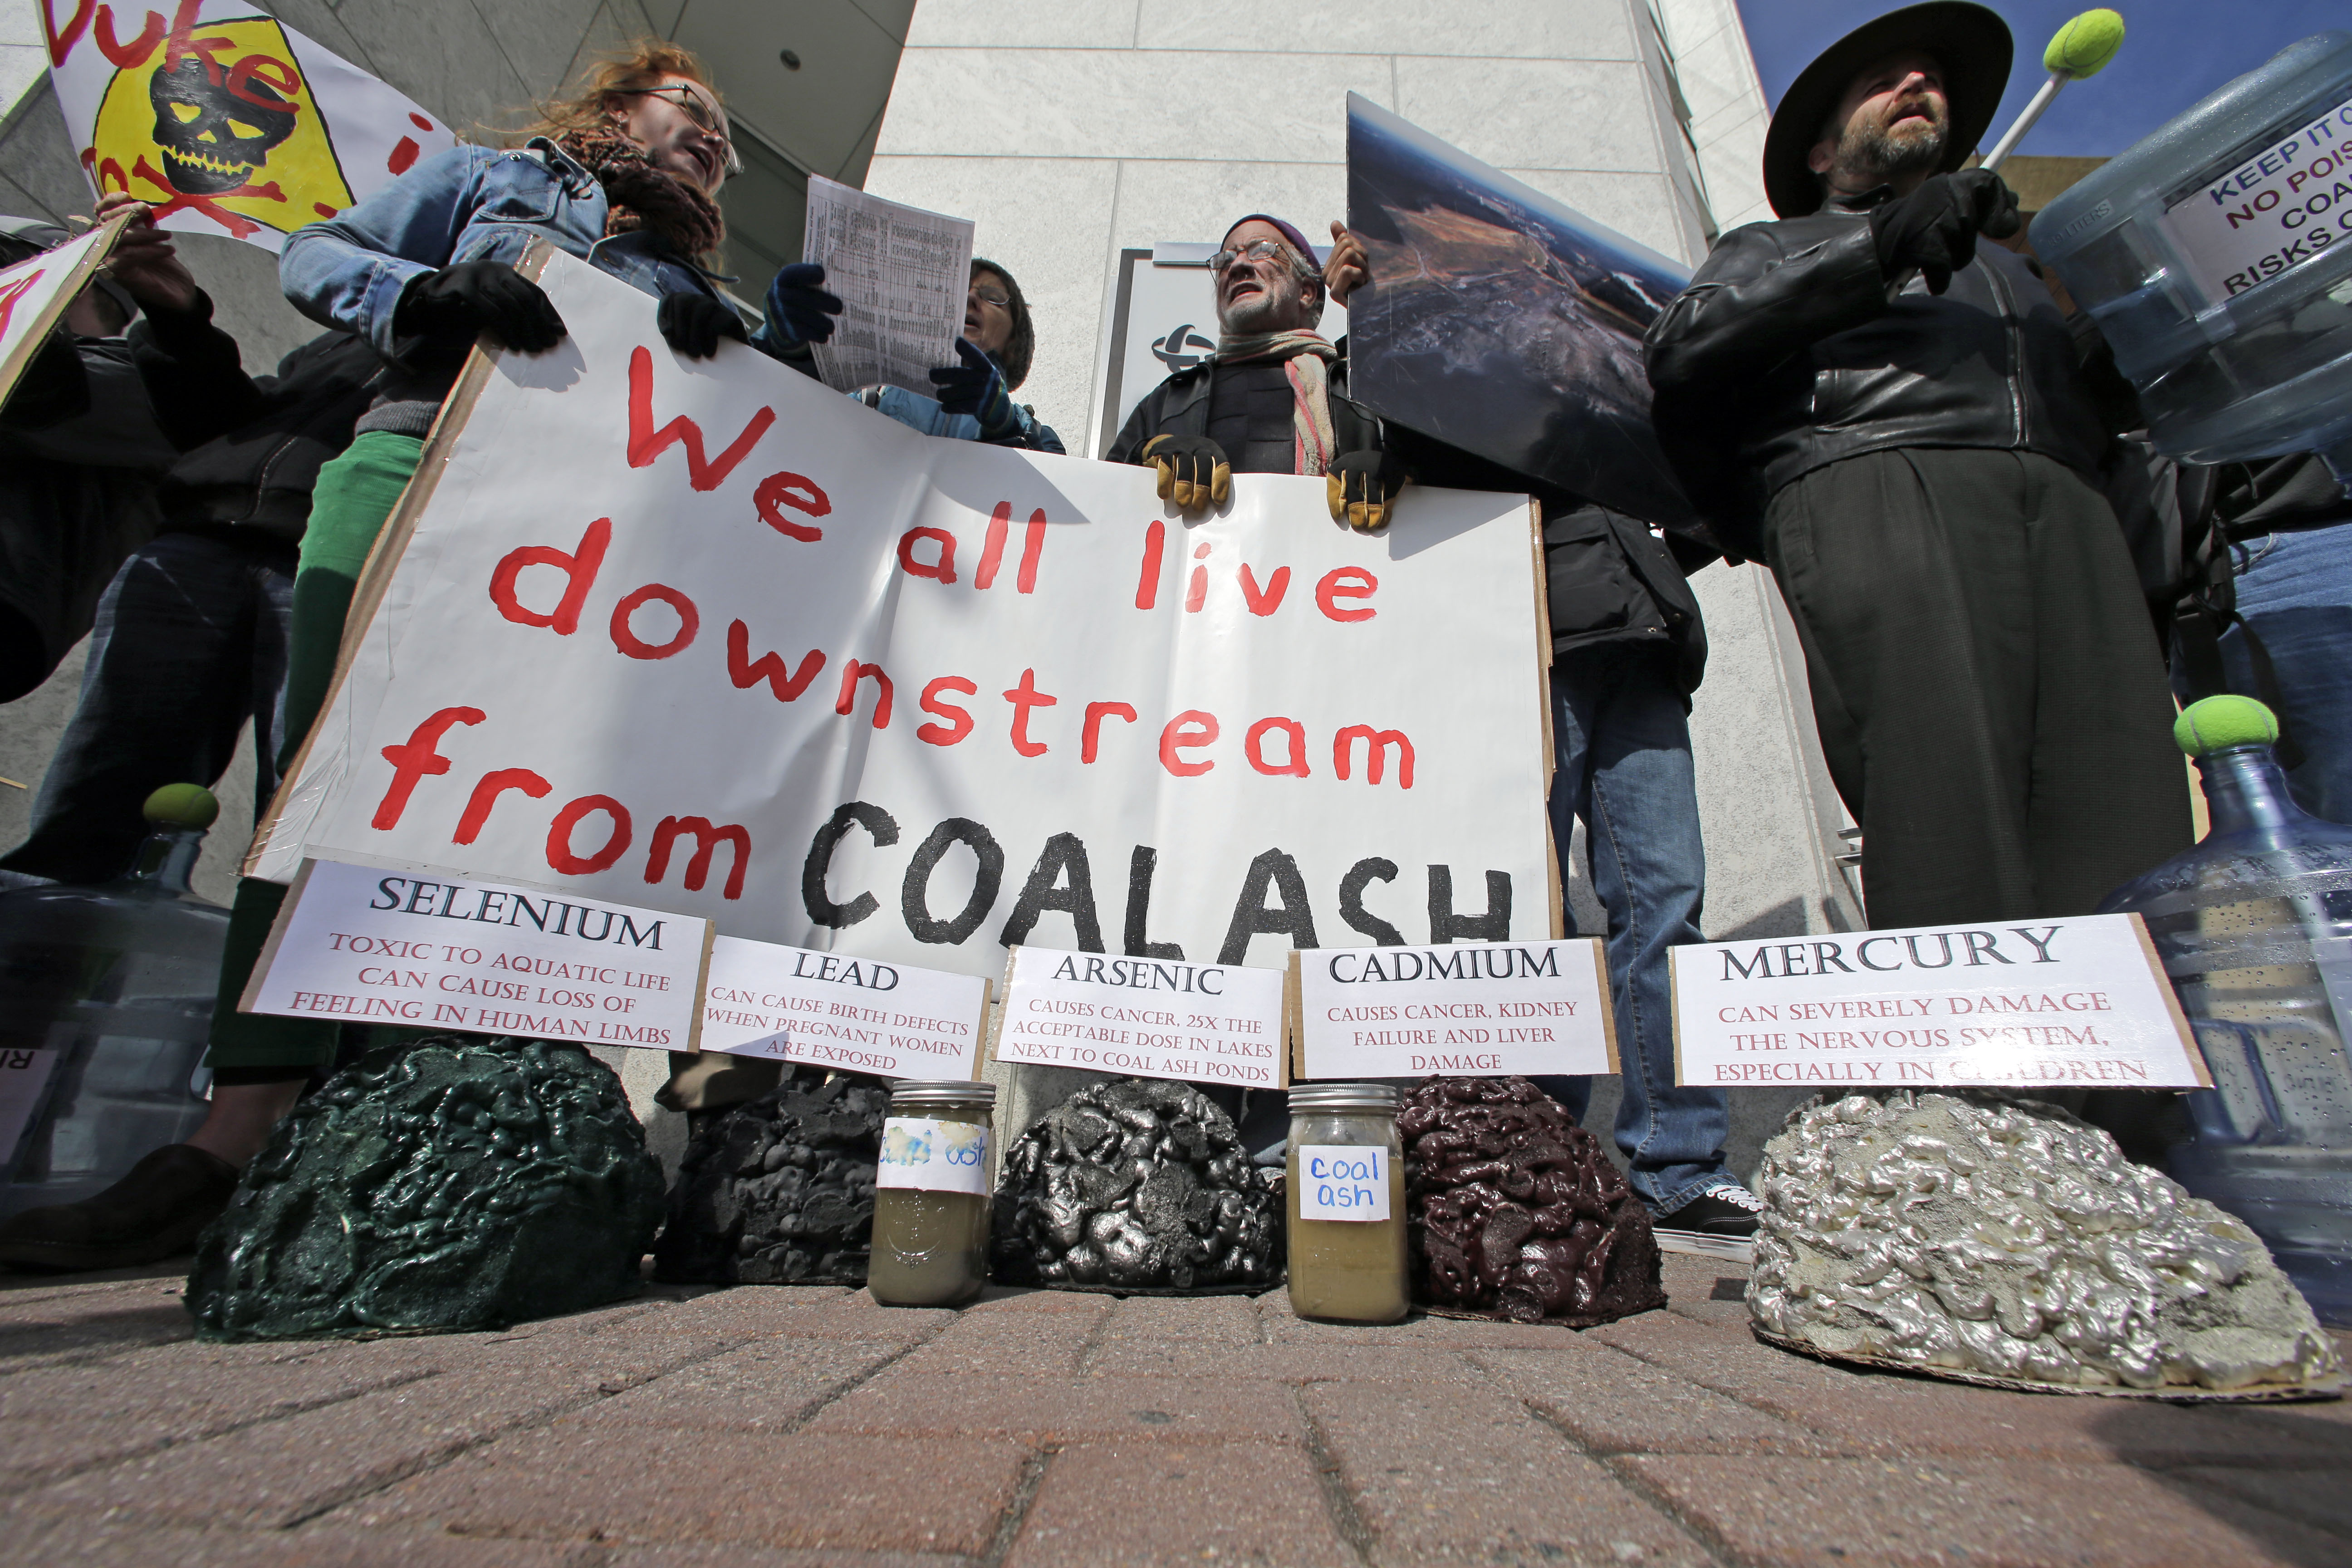 FILE - Demonstrators chant and hold signs behind a display of coal ash and the heavy metals in it during a protest near Duke Energy's headquarters in Charlotte, N.C., Feb. 6, 2014 over Duke Energy's coal plants.